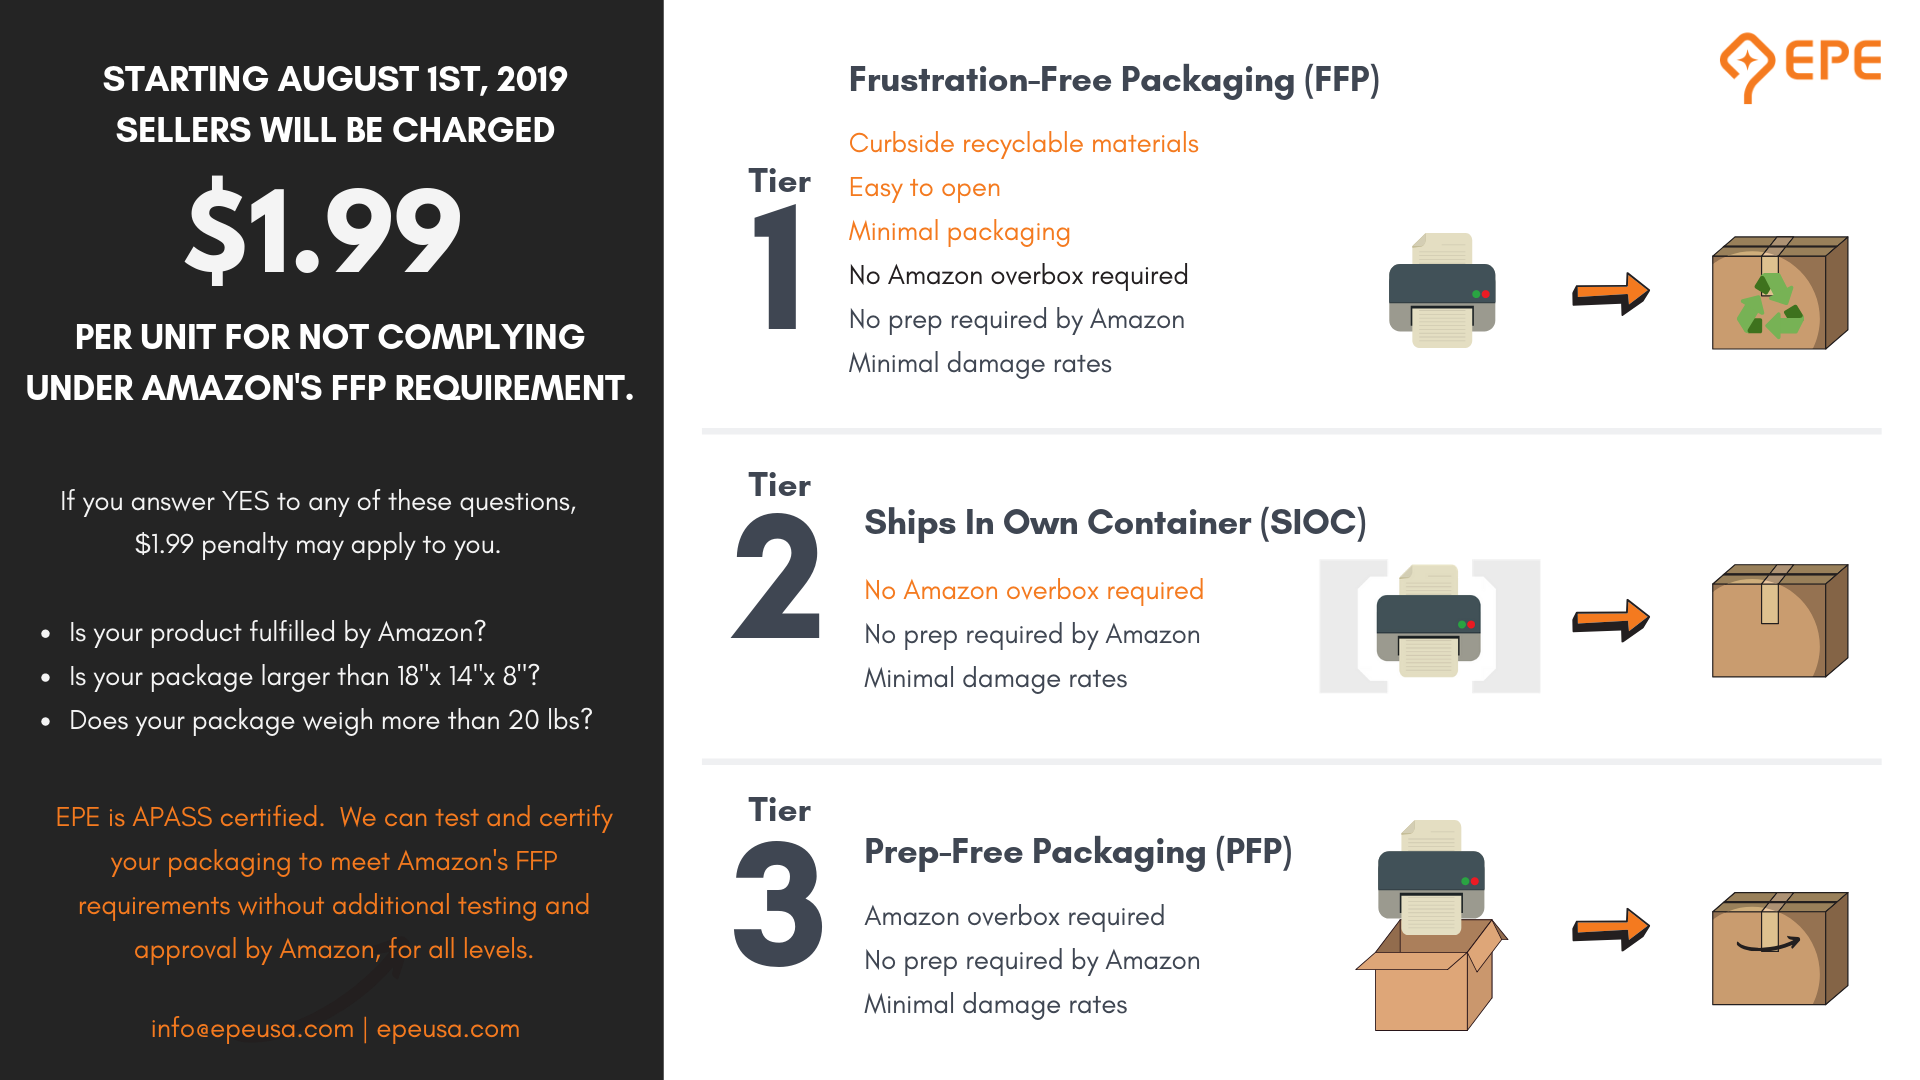 What Is Amazon's Frustration Free Packaging Details